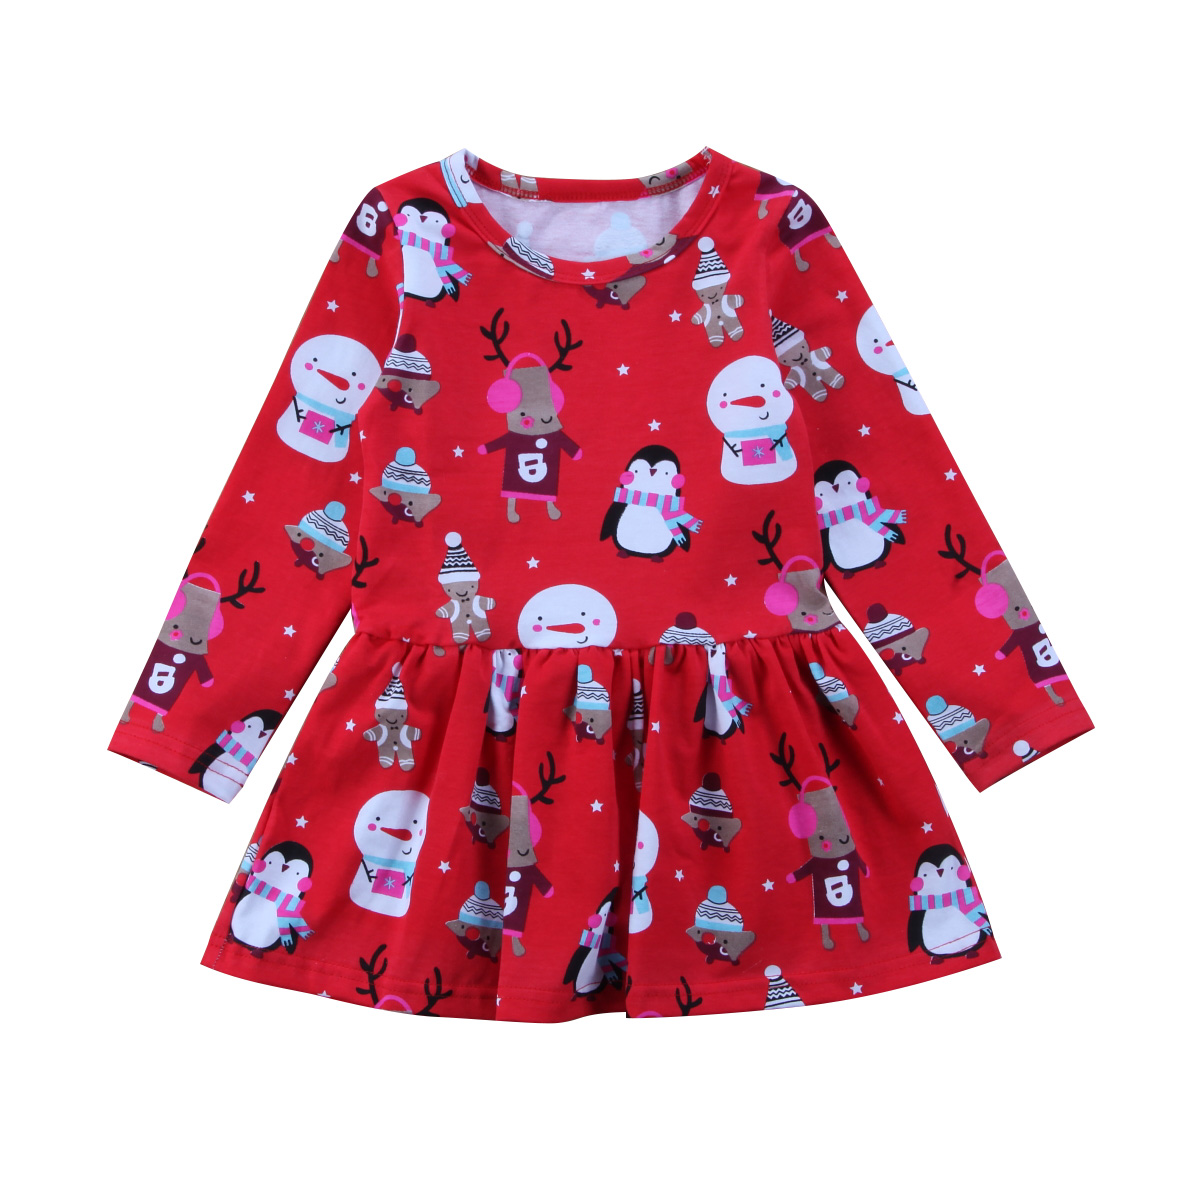 2-6Y christmas Kids Baby Girls dress red cartoon Snowman penguin Tutu Dress Outfits Boutique girls clothes xmas Gifts for girls недорго, оригинальная цена